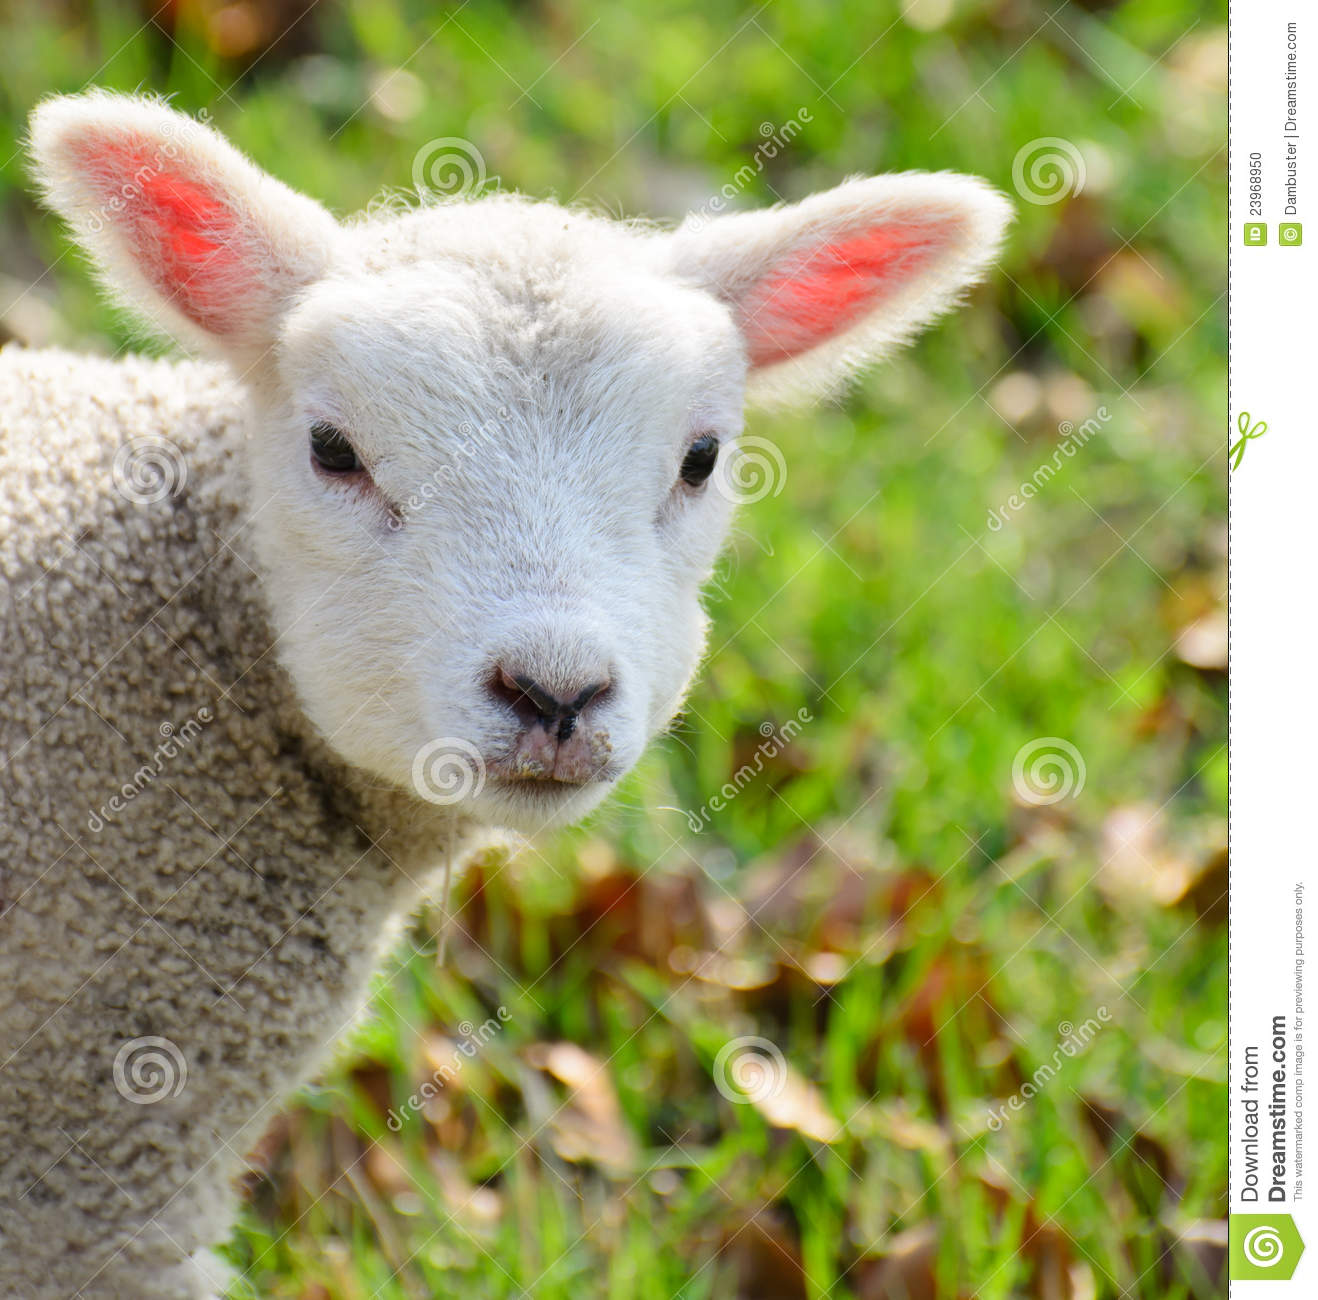 Newborn baby lamb stock photo. Image of happy, adorable - 23968950 for baby lamb in spring  143gtk